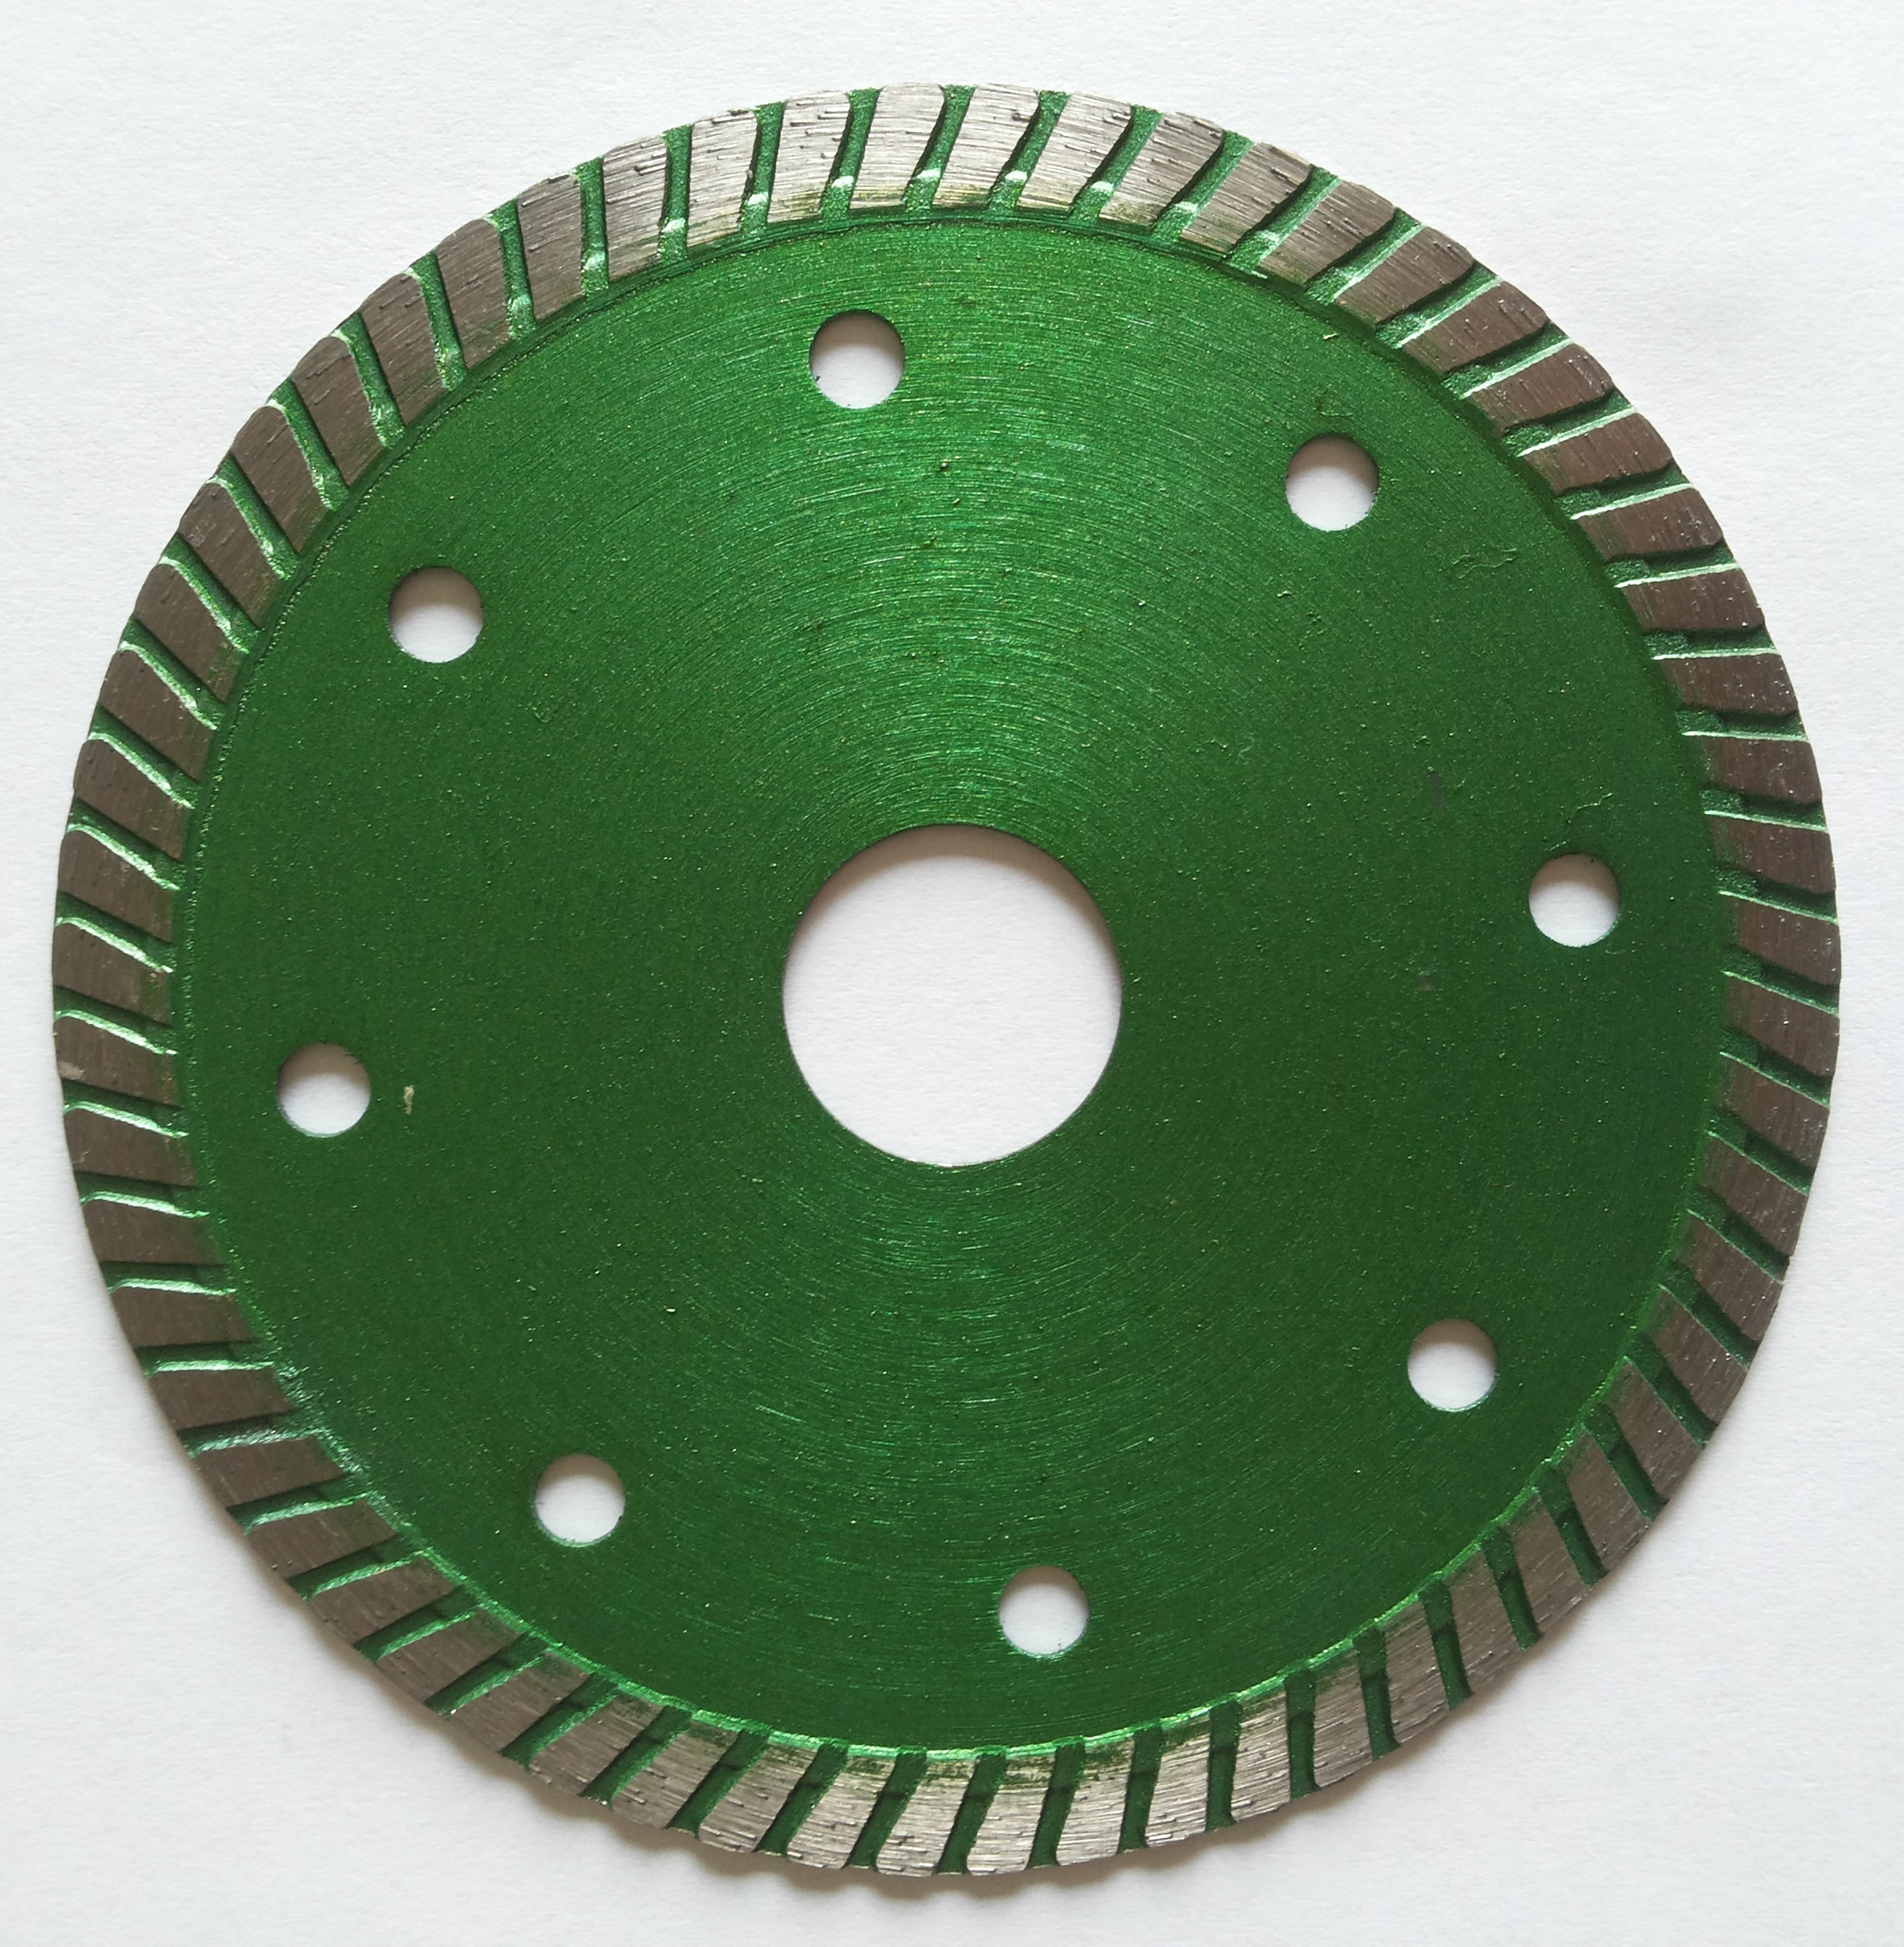 Sintered hot-pressed turbo continous saw blade